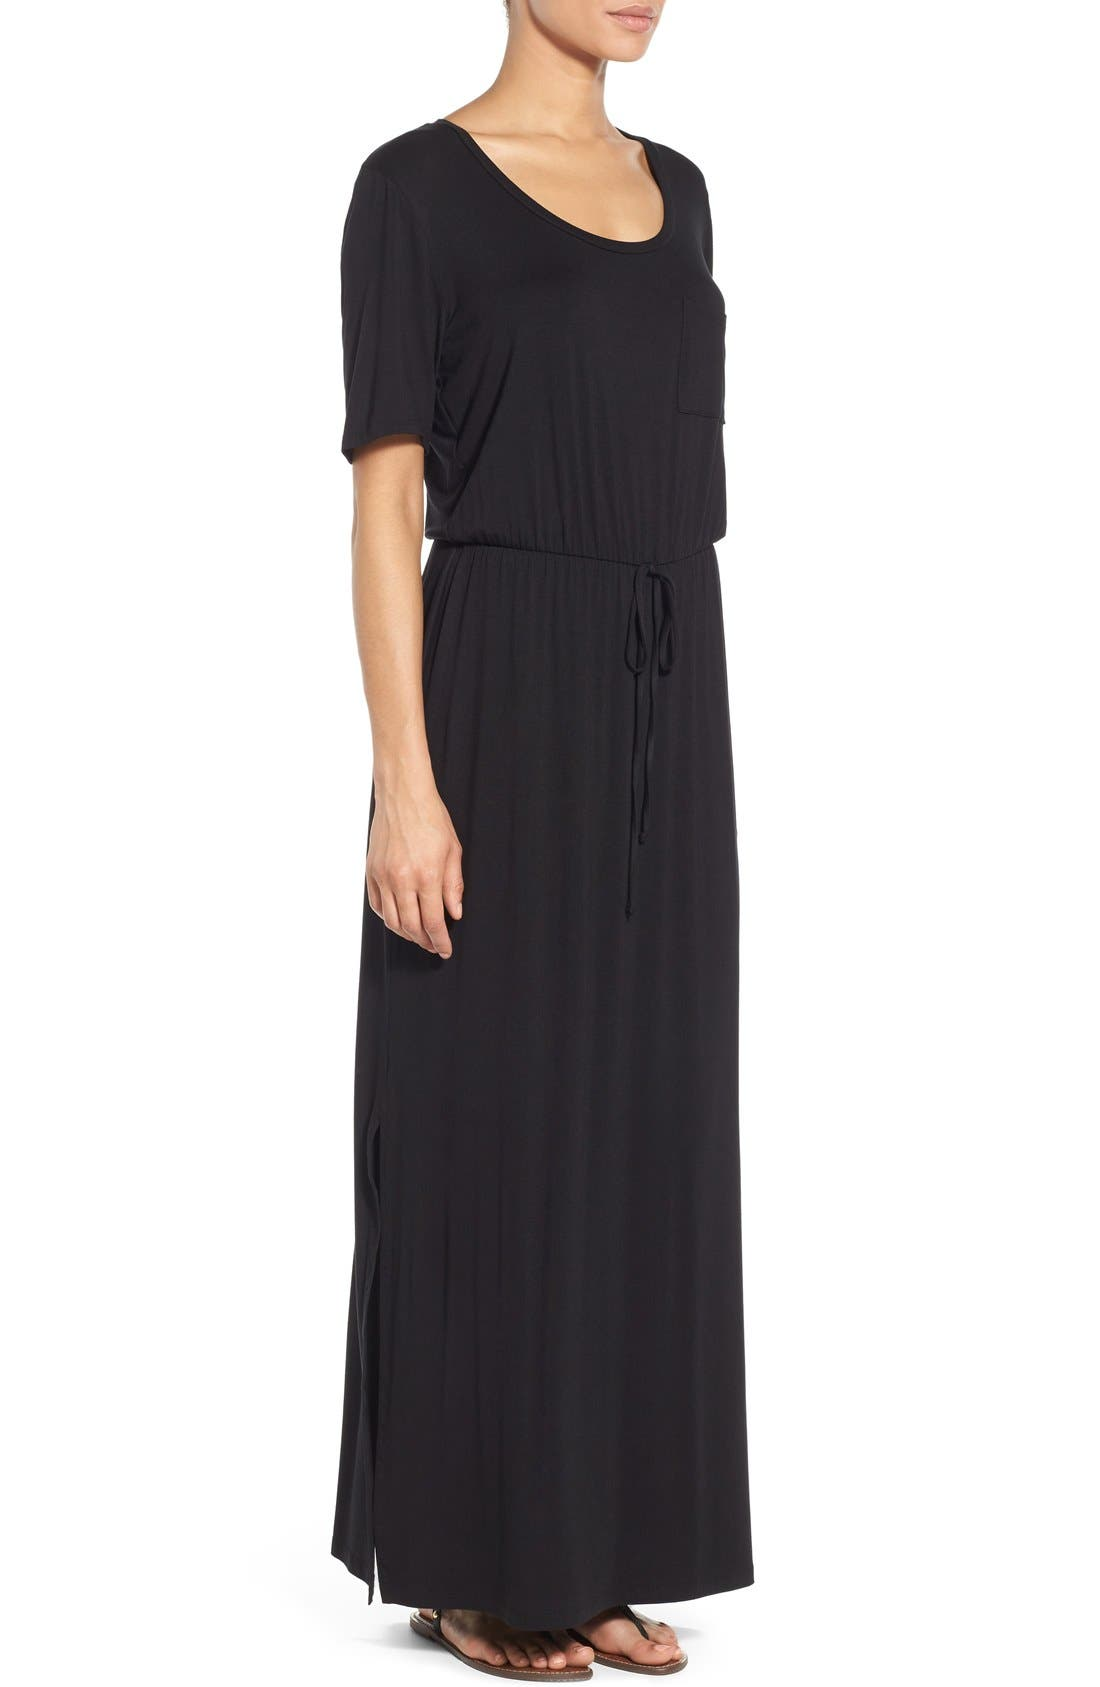 BOBEAU, Drawstring Waist Jersey Maxi Dress, Alternate thumbnail 2, color, 005